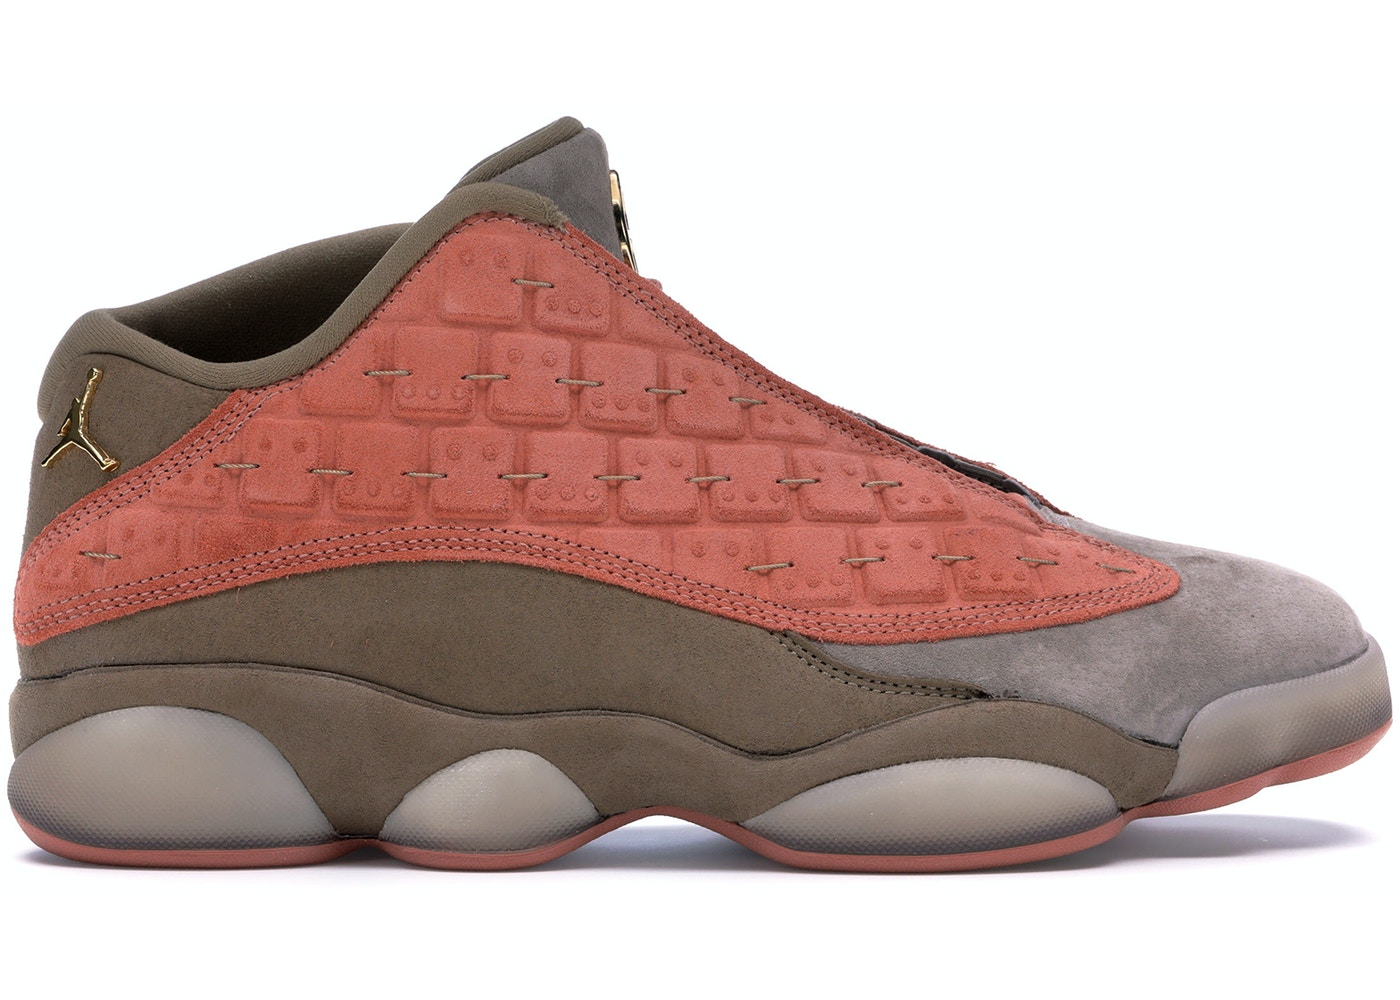 big sale f8d4a fbebc Jordan 13 Retro Low Clot Sepia Stone